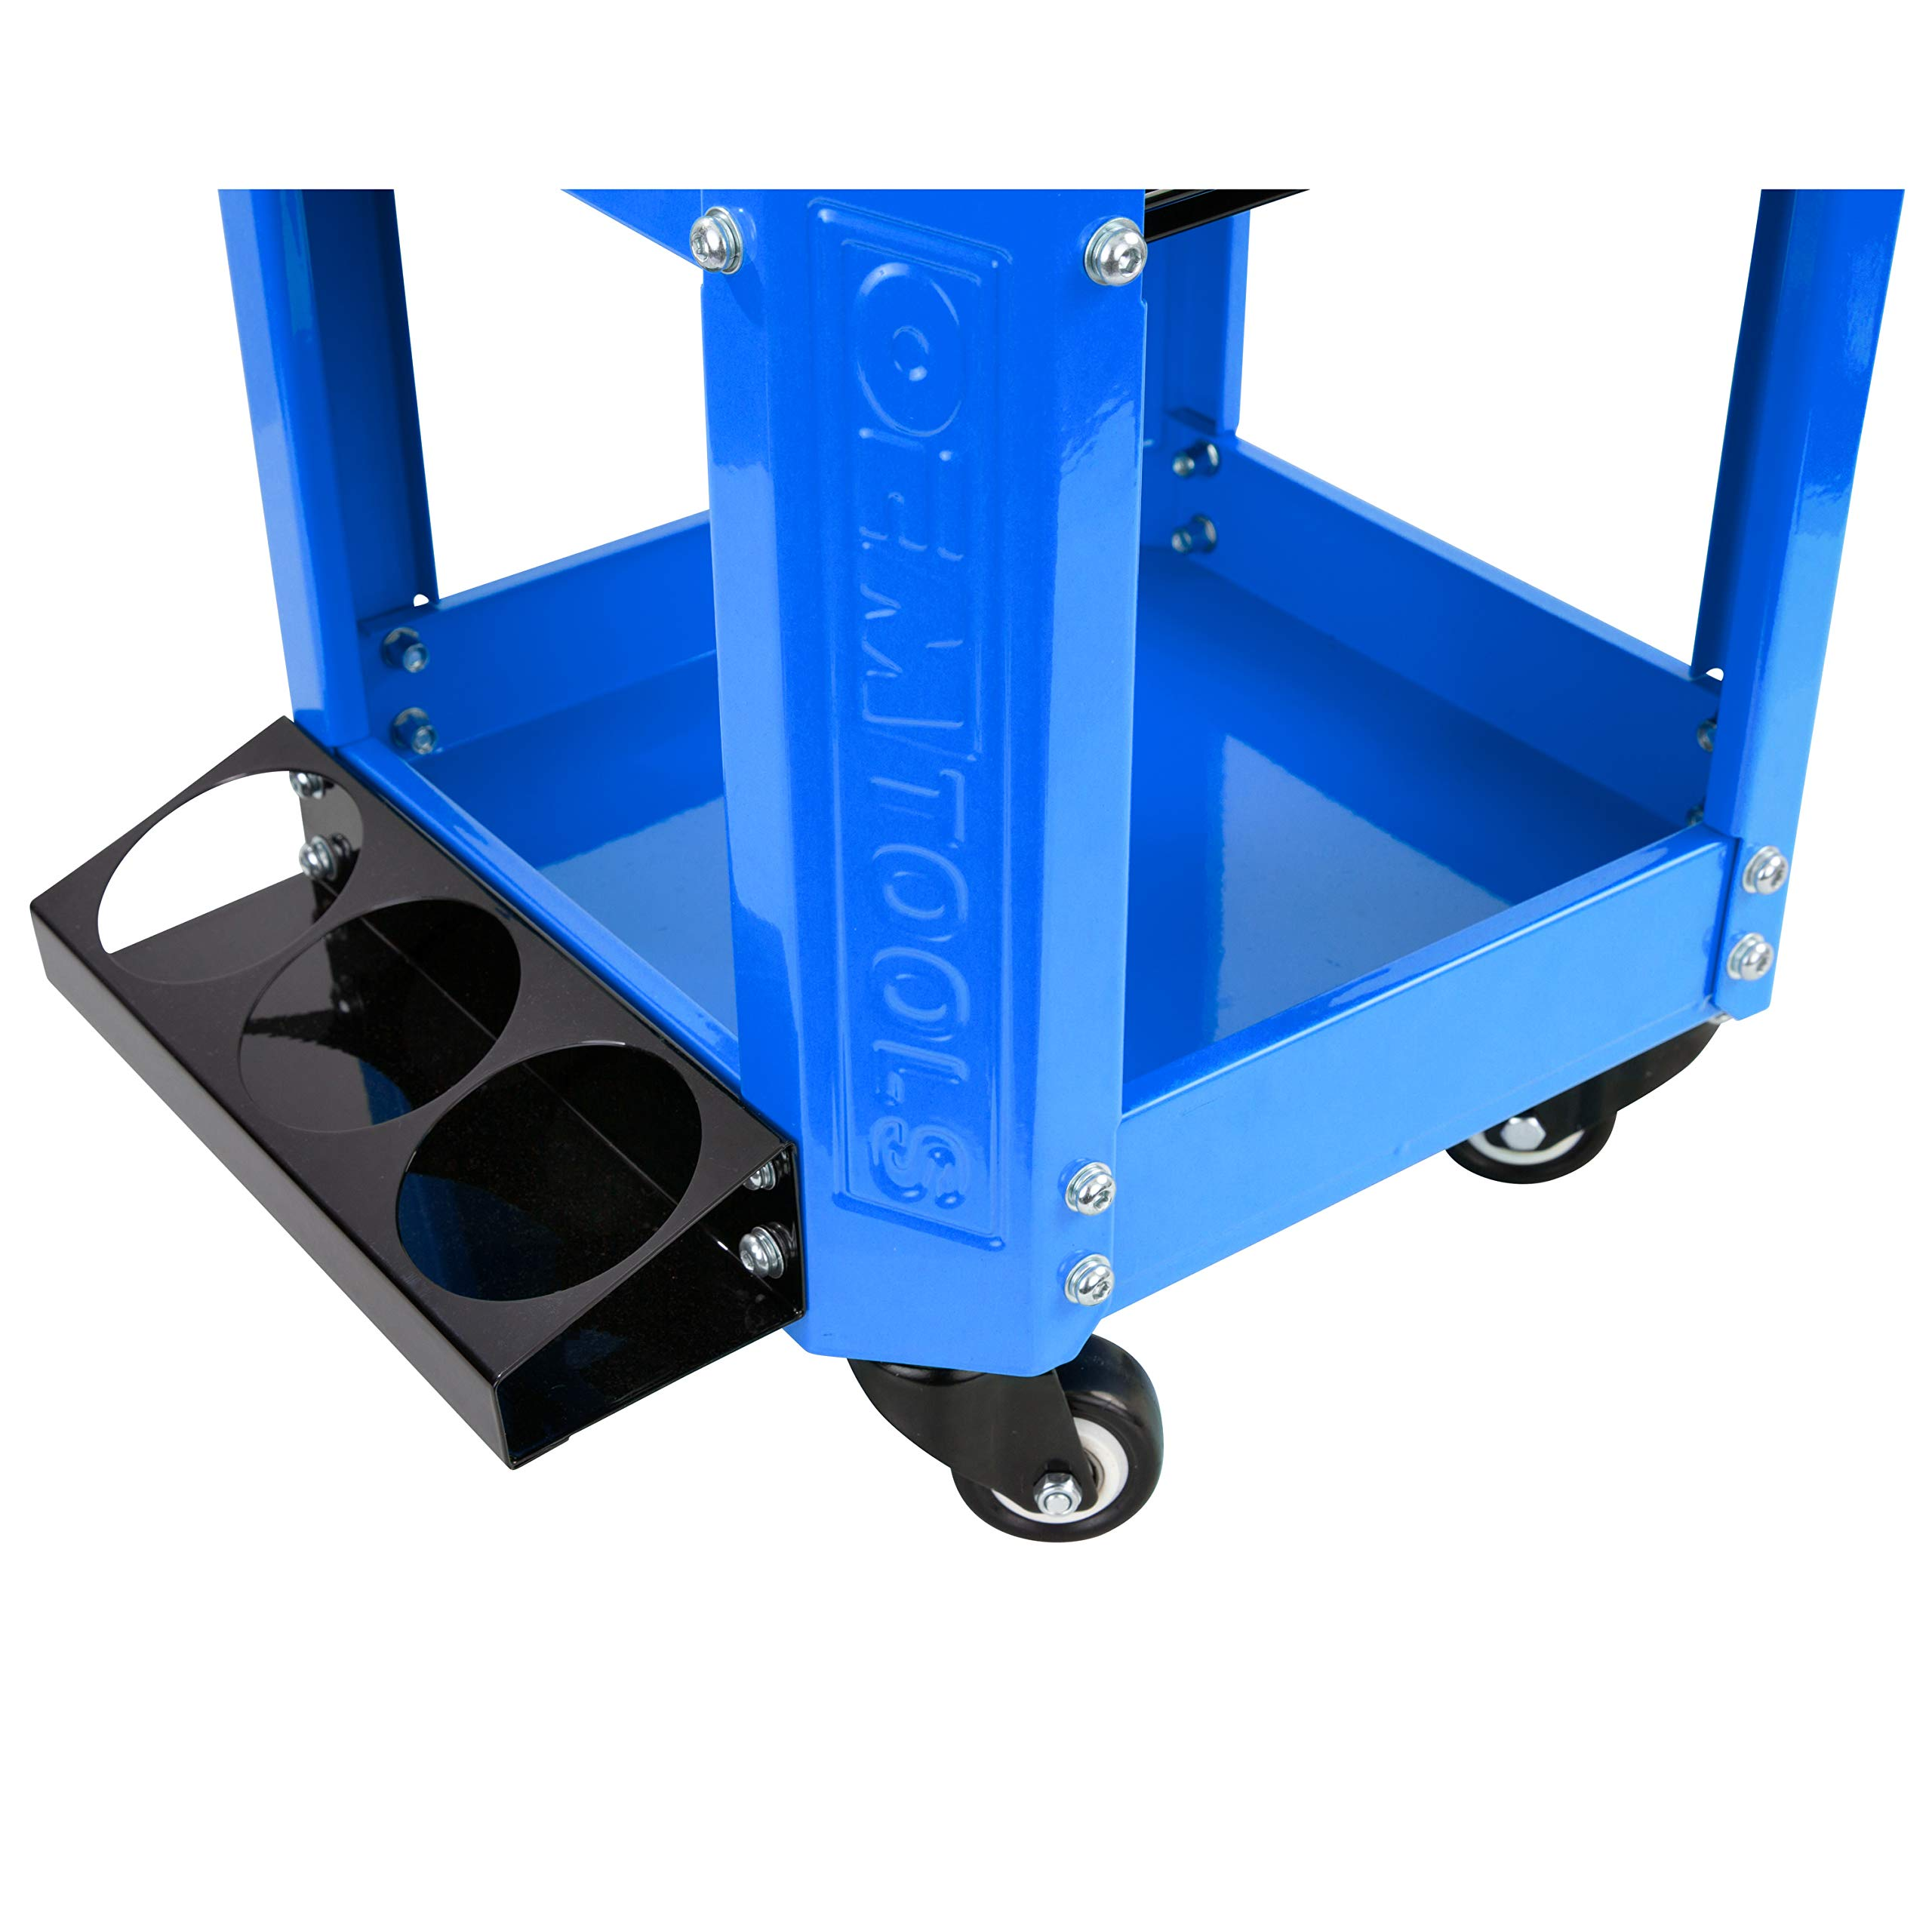 OEMTOOL 24996 Blue Rolling Workshop Creeper Seat with 2 Tool Storage Drawers Under Seat Parts Storage Can Holders by OEMTOOLS (Image #5)